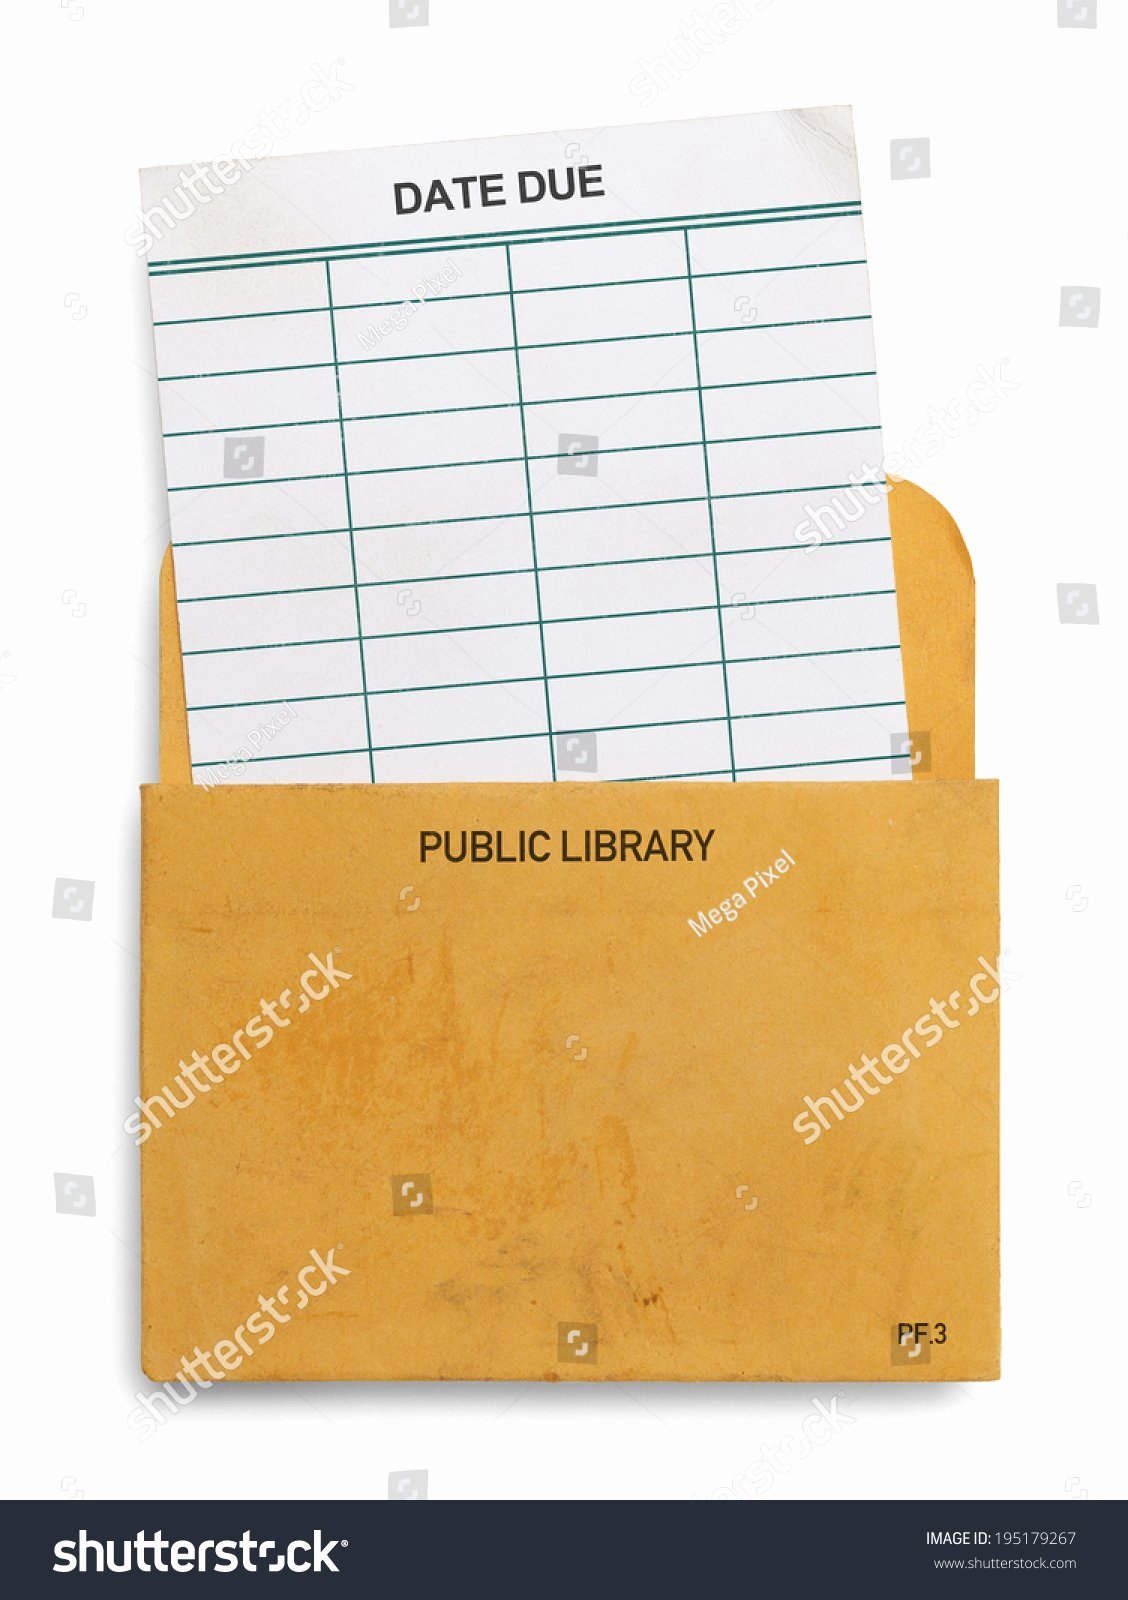 Library Checkout Card Template Beautiful Blank Library Book Check Out Card Stock